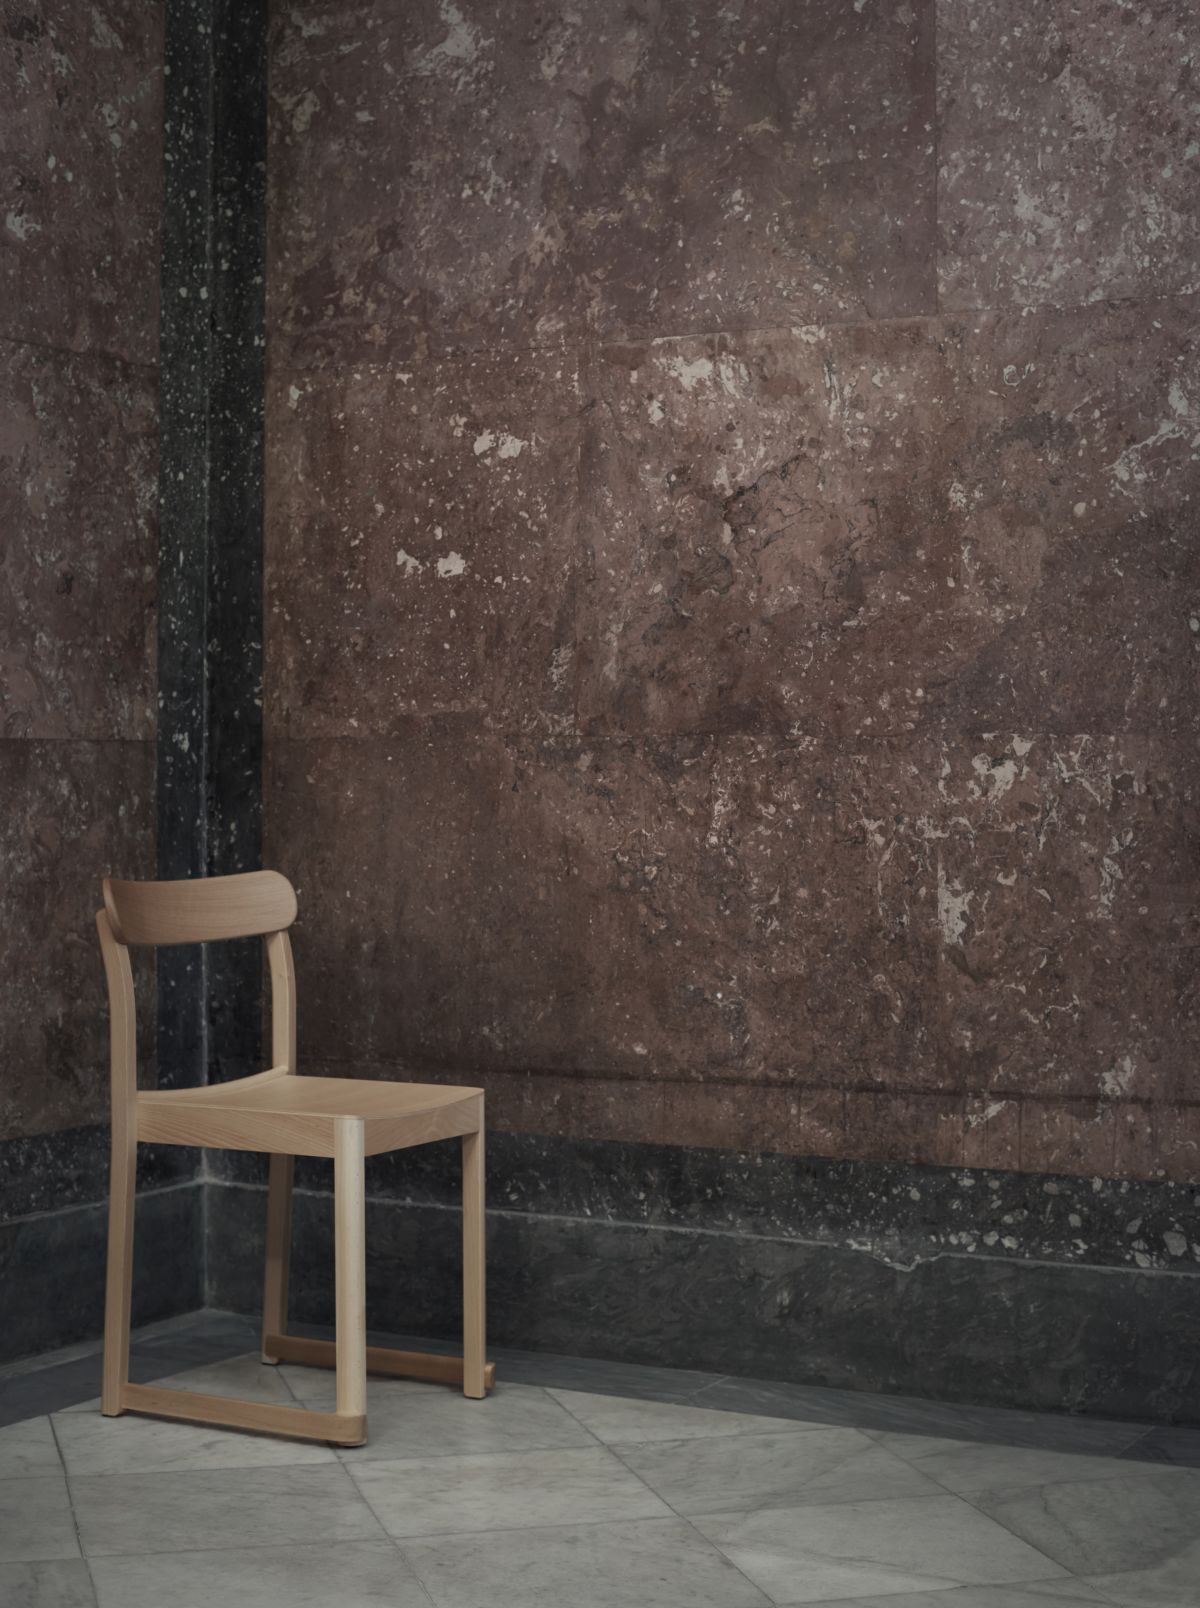 Atelier Chair Nationalmuseum Stockholm 2444755